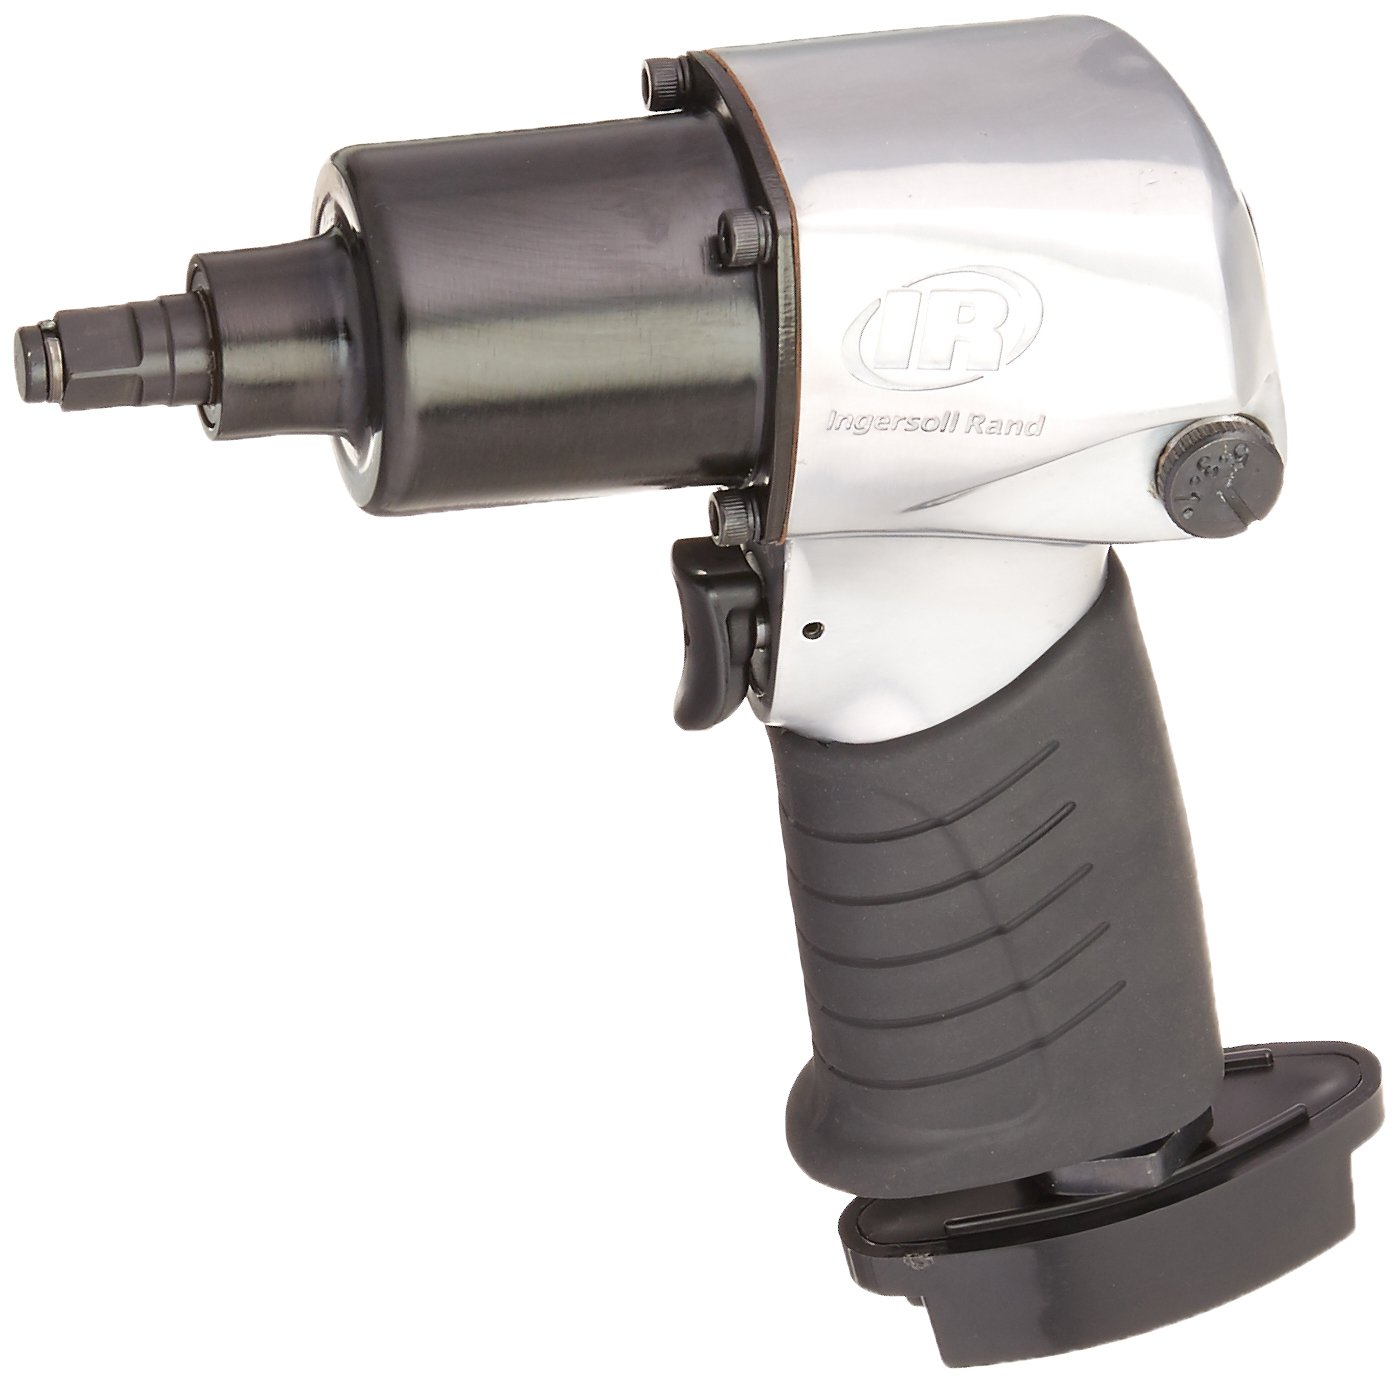 Ingersoll Rand 215G 3/8-Inch Edge Series Air Impactool, Silver